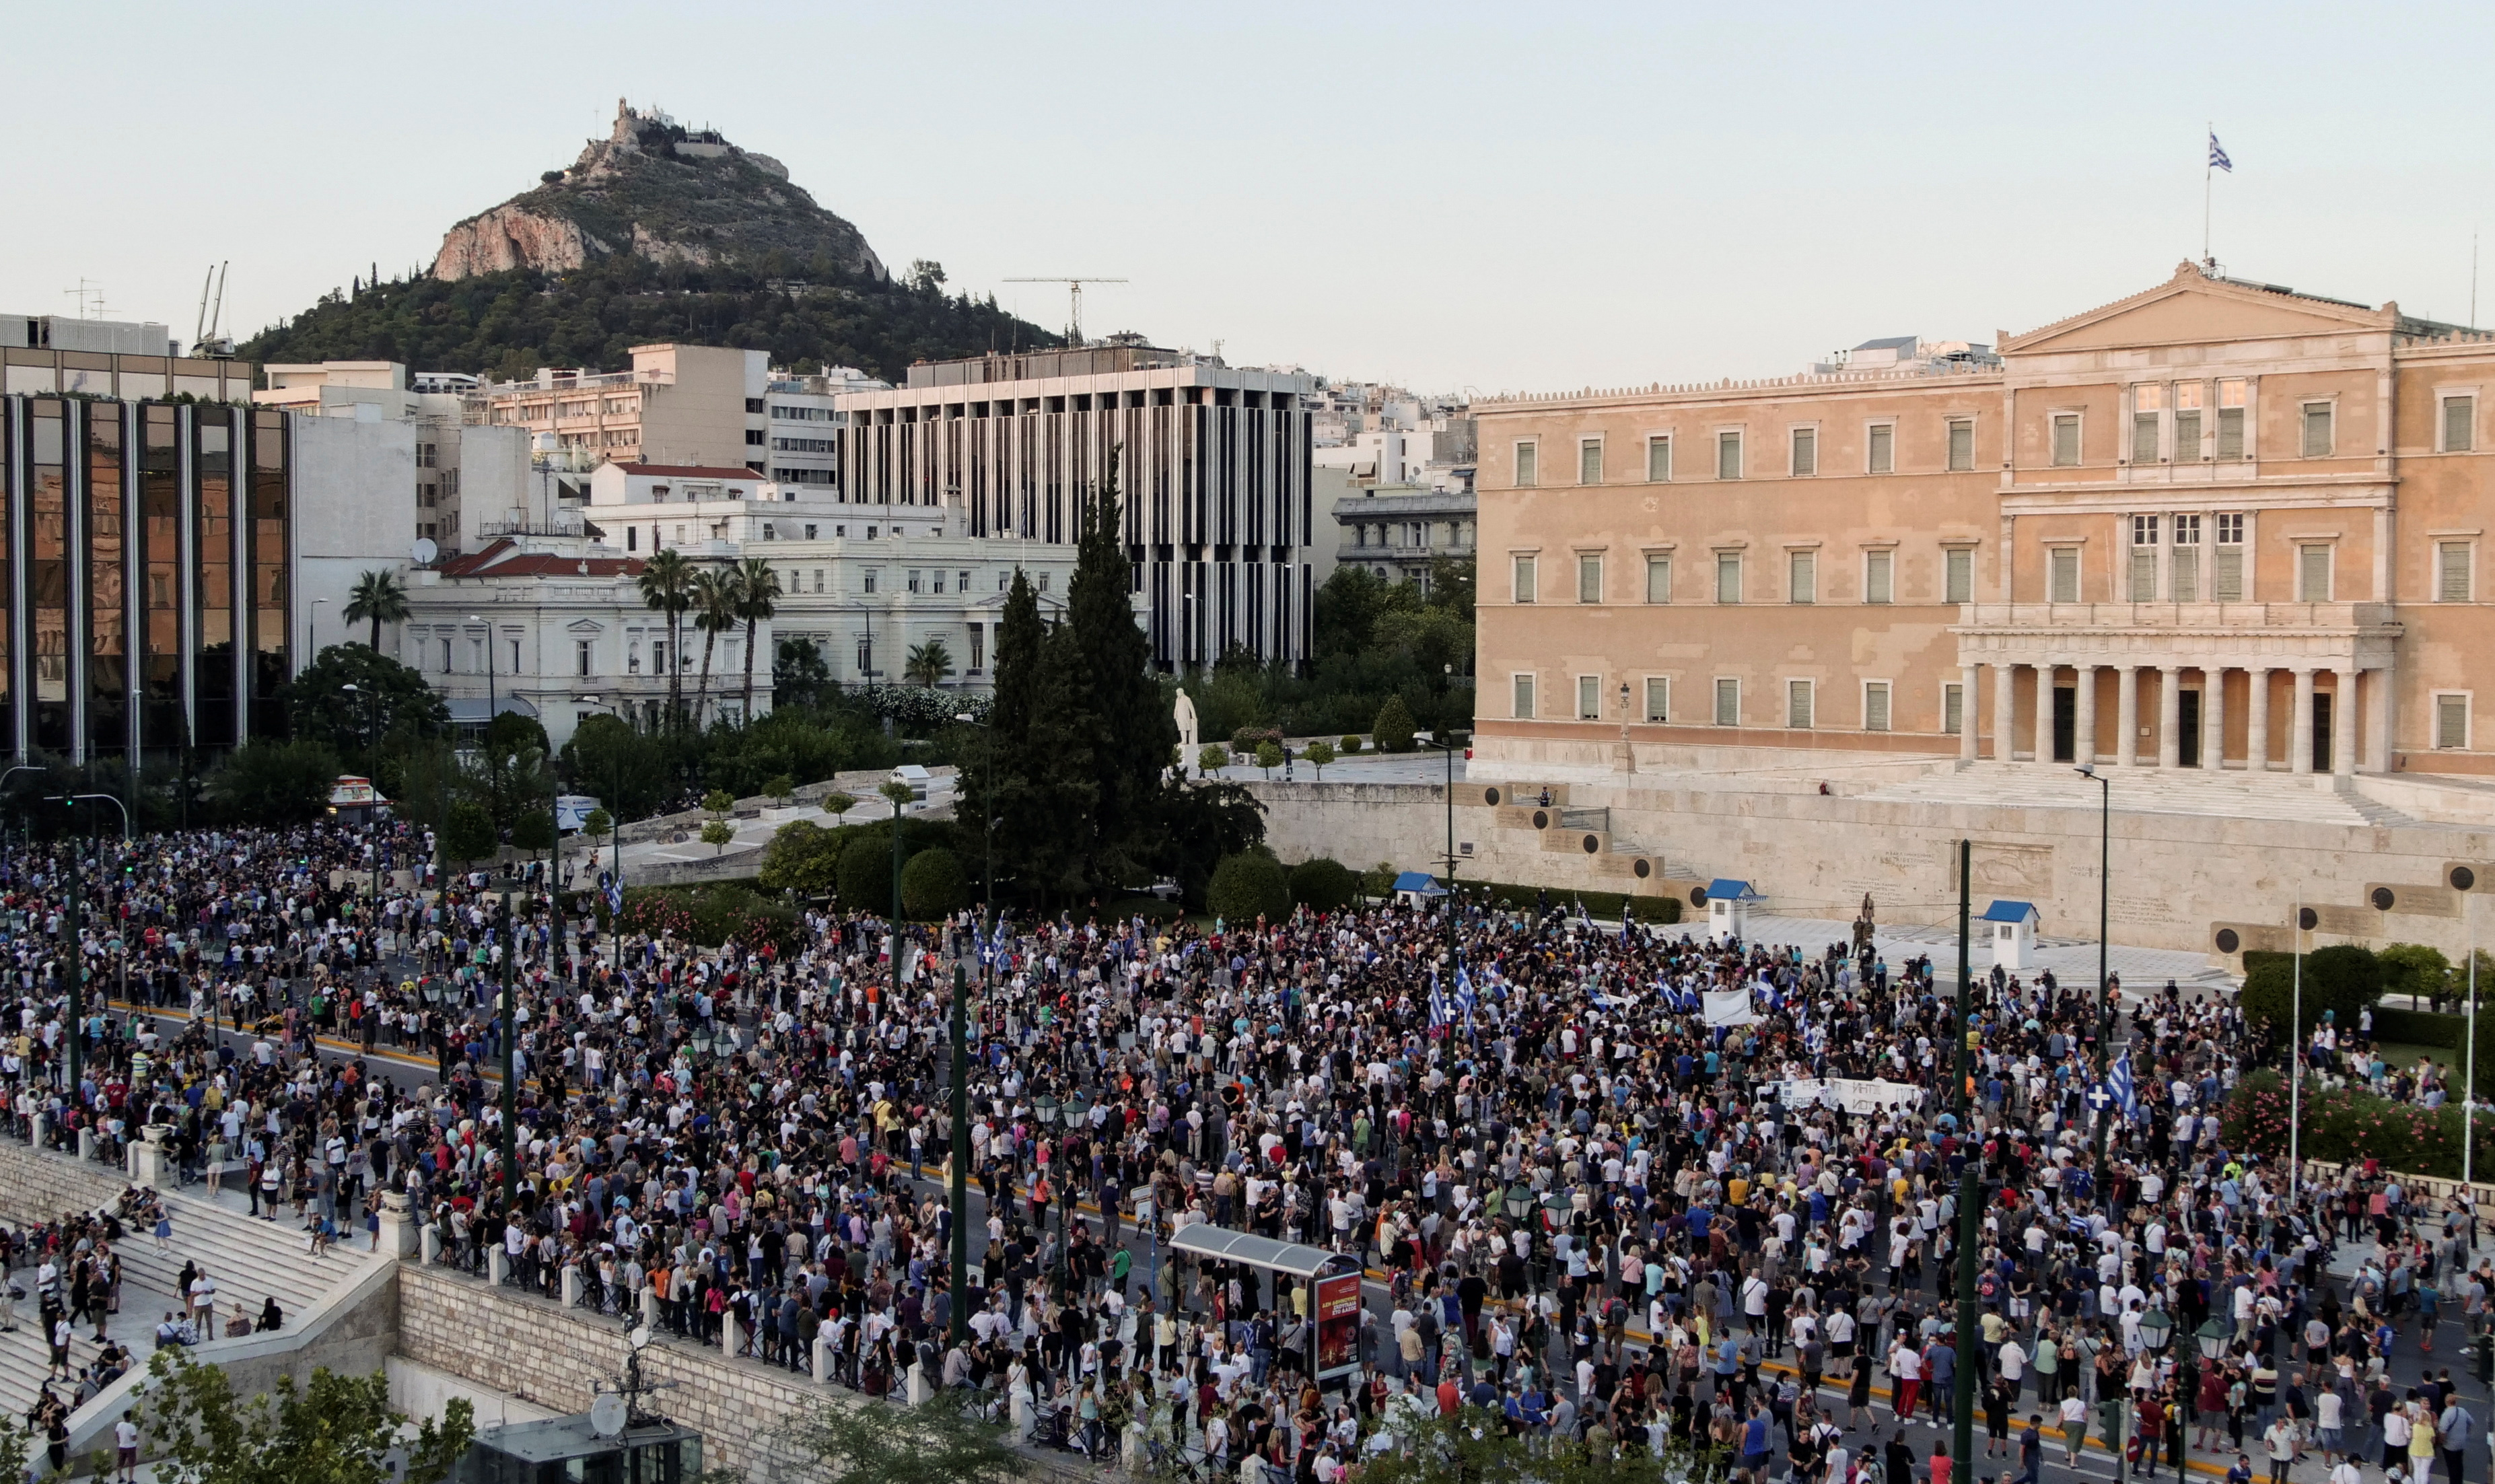 Anti-vaccine protesters take part in a demonstration outside the parliament building after the government announced mandatory vaccinations for certain sectors, in Athens, Greece, July 14, 2021. REUTERS/Vassilis Triandafyllou